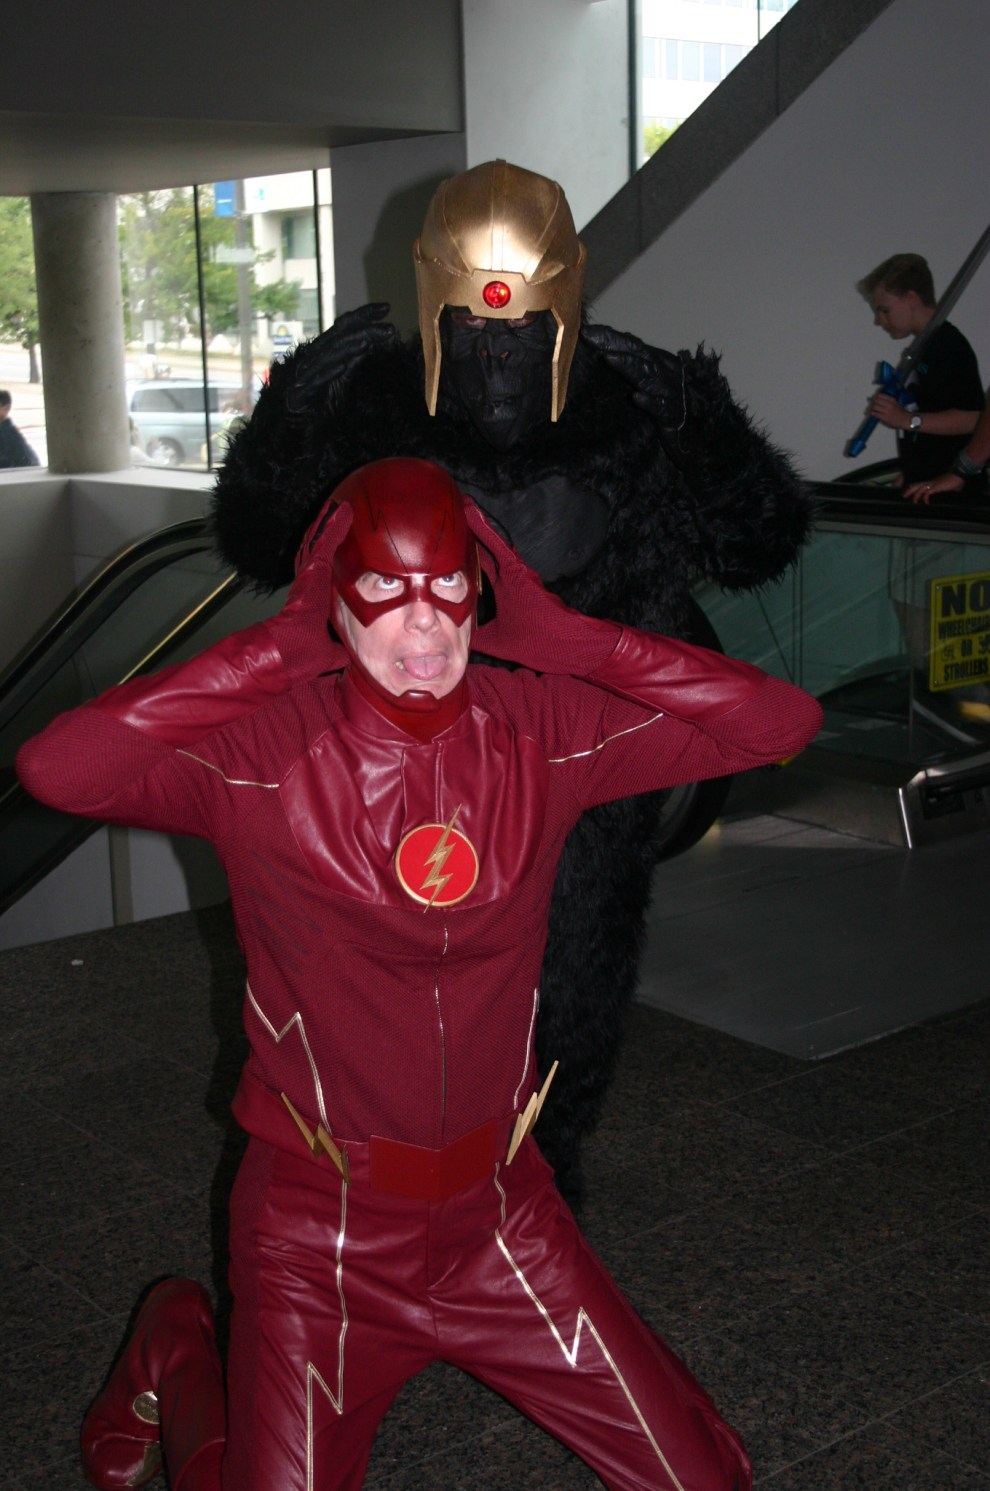 Grood takes down The Flash